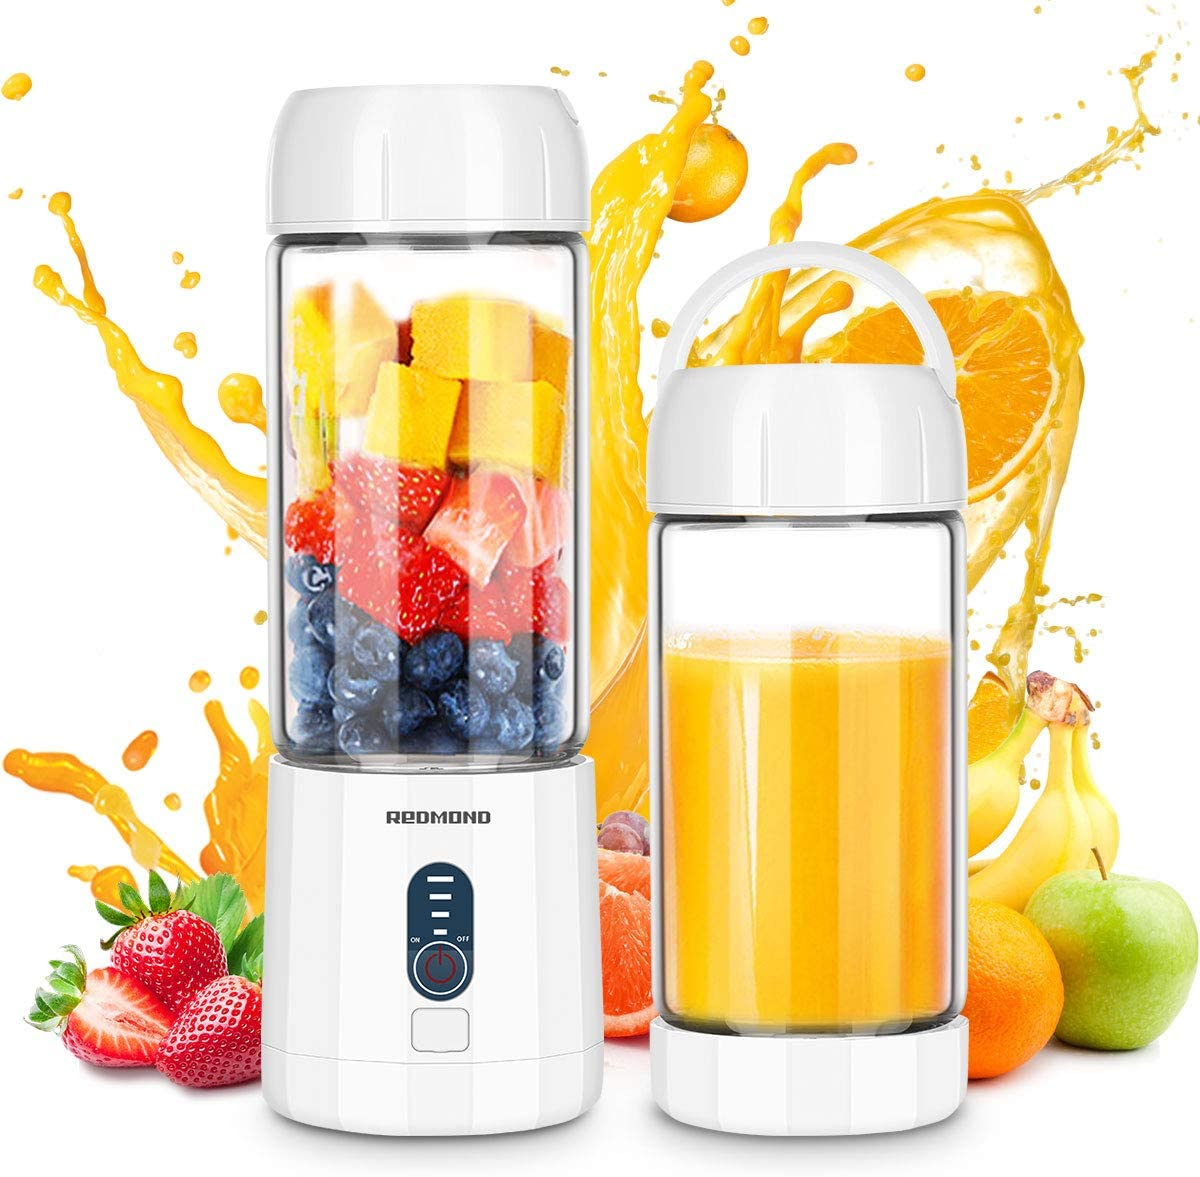 REDMOND Smoothie Blender, 4000mAh Portable USB Rechargeable Blender with 480ml Glass Travel Bottle, 6 Stainless Steel Powerful Blades, Battery Indicator for Shakes and Smoothies Outdoor, White BL015